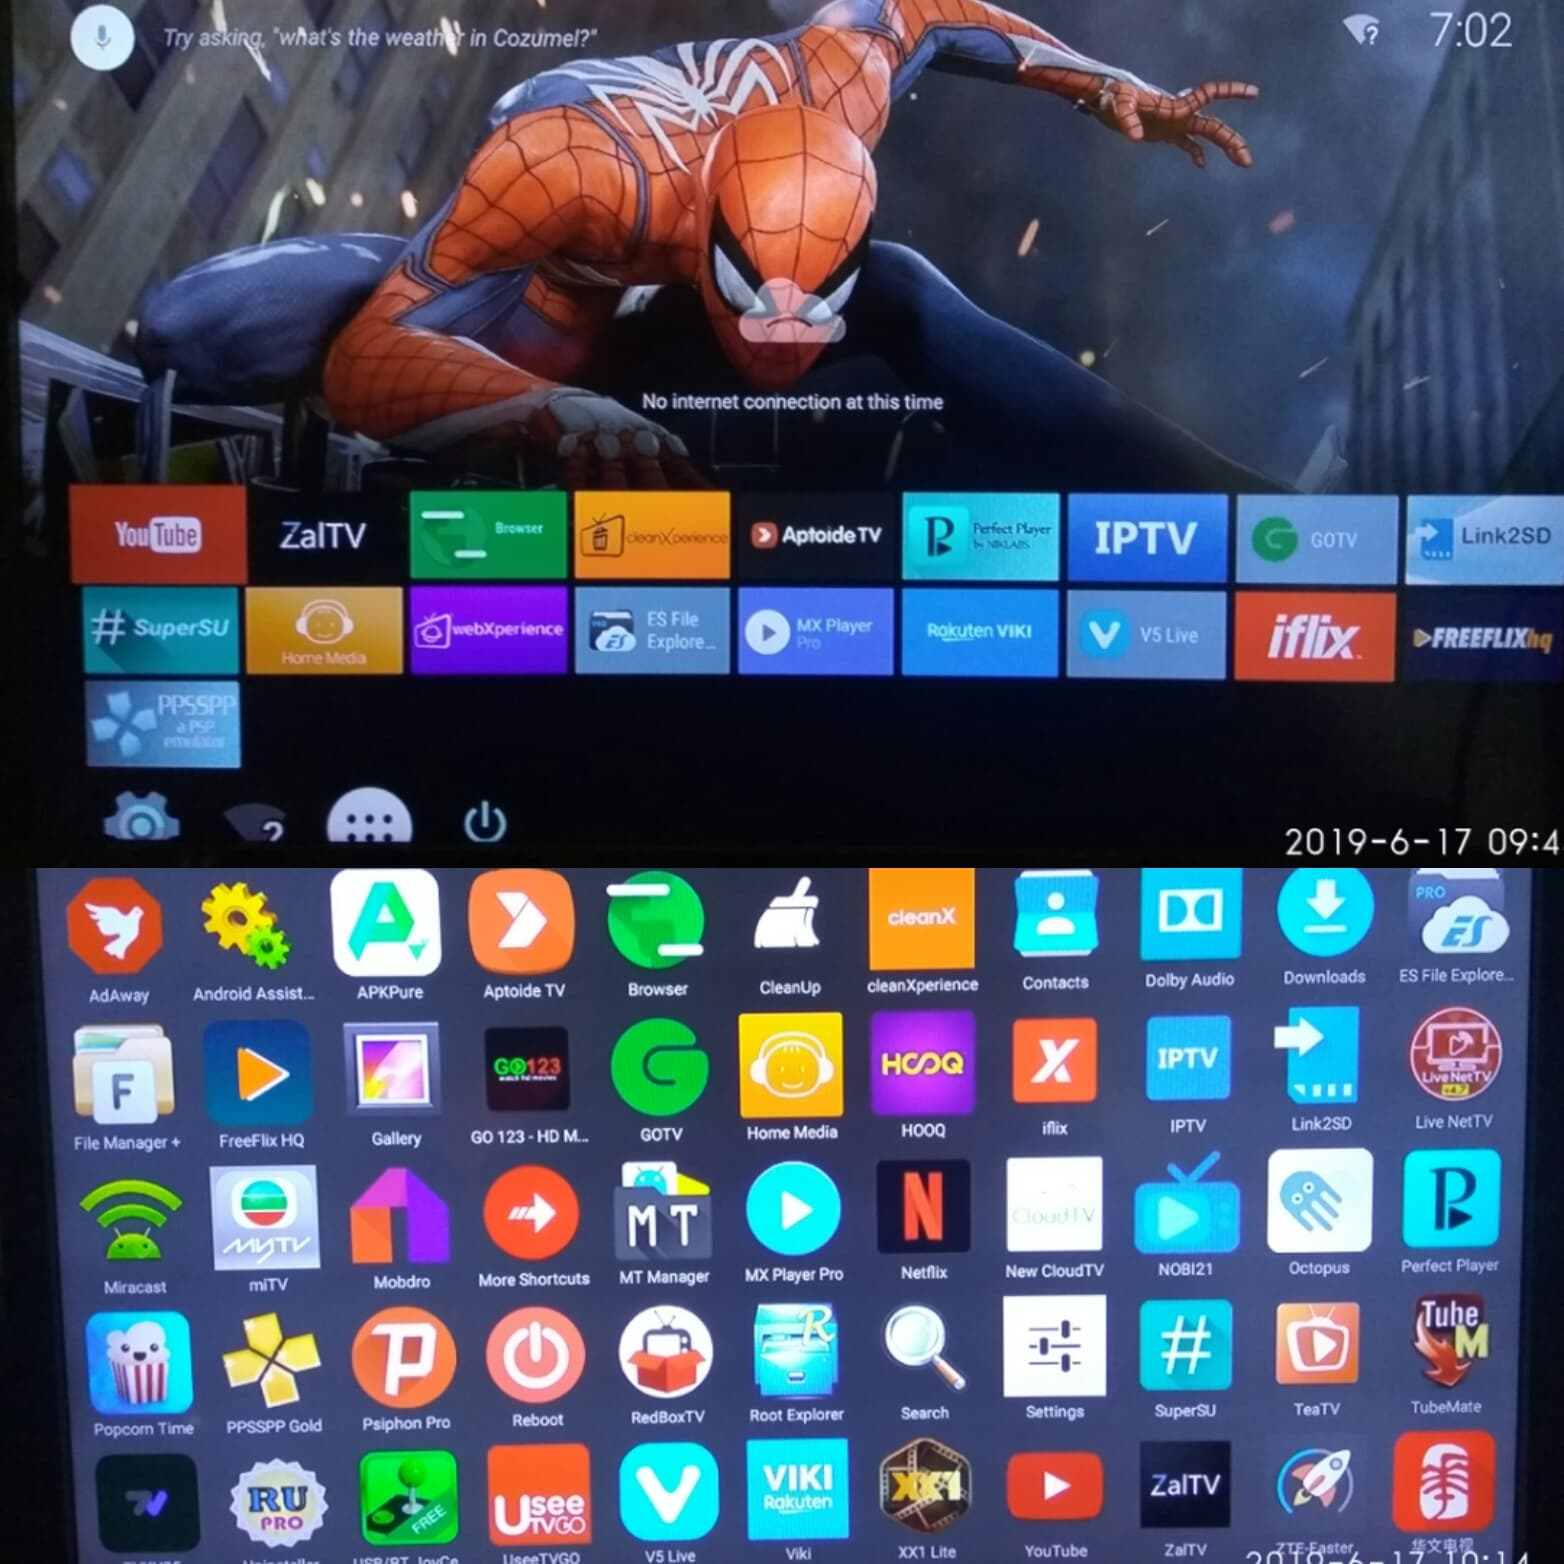 Jual Stb Android tv box stb indihome 4K ROOT stb zte B860H